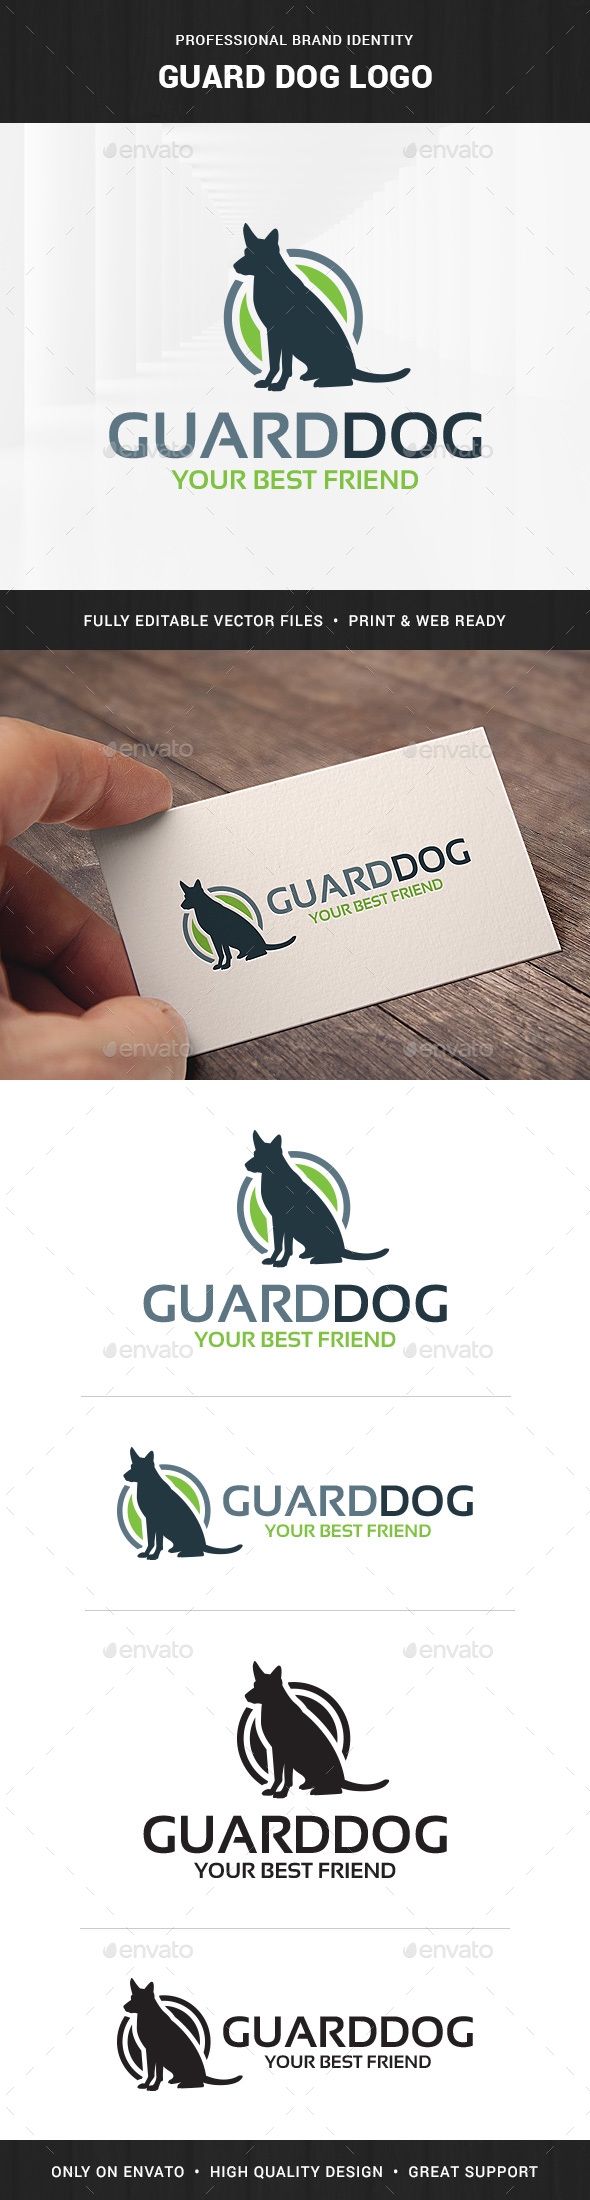 Guard Dog Logo Template - Animals Logo Templates